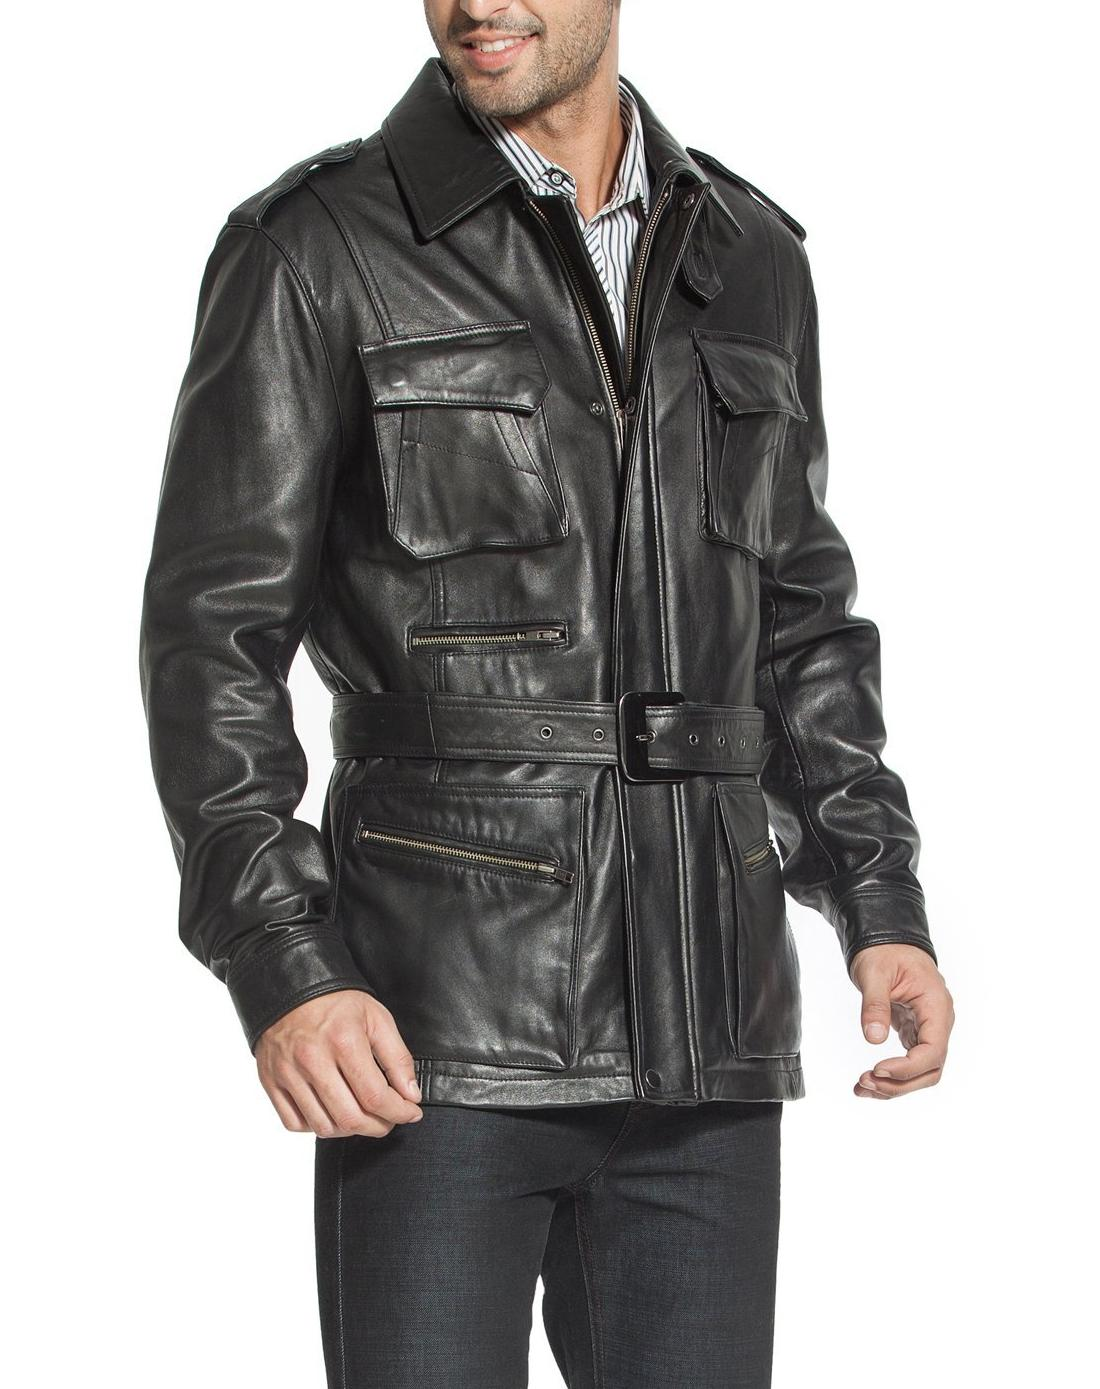 AsEstilo Store: STYLISH LEATHER TRENCH COATS FOR MEN